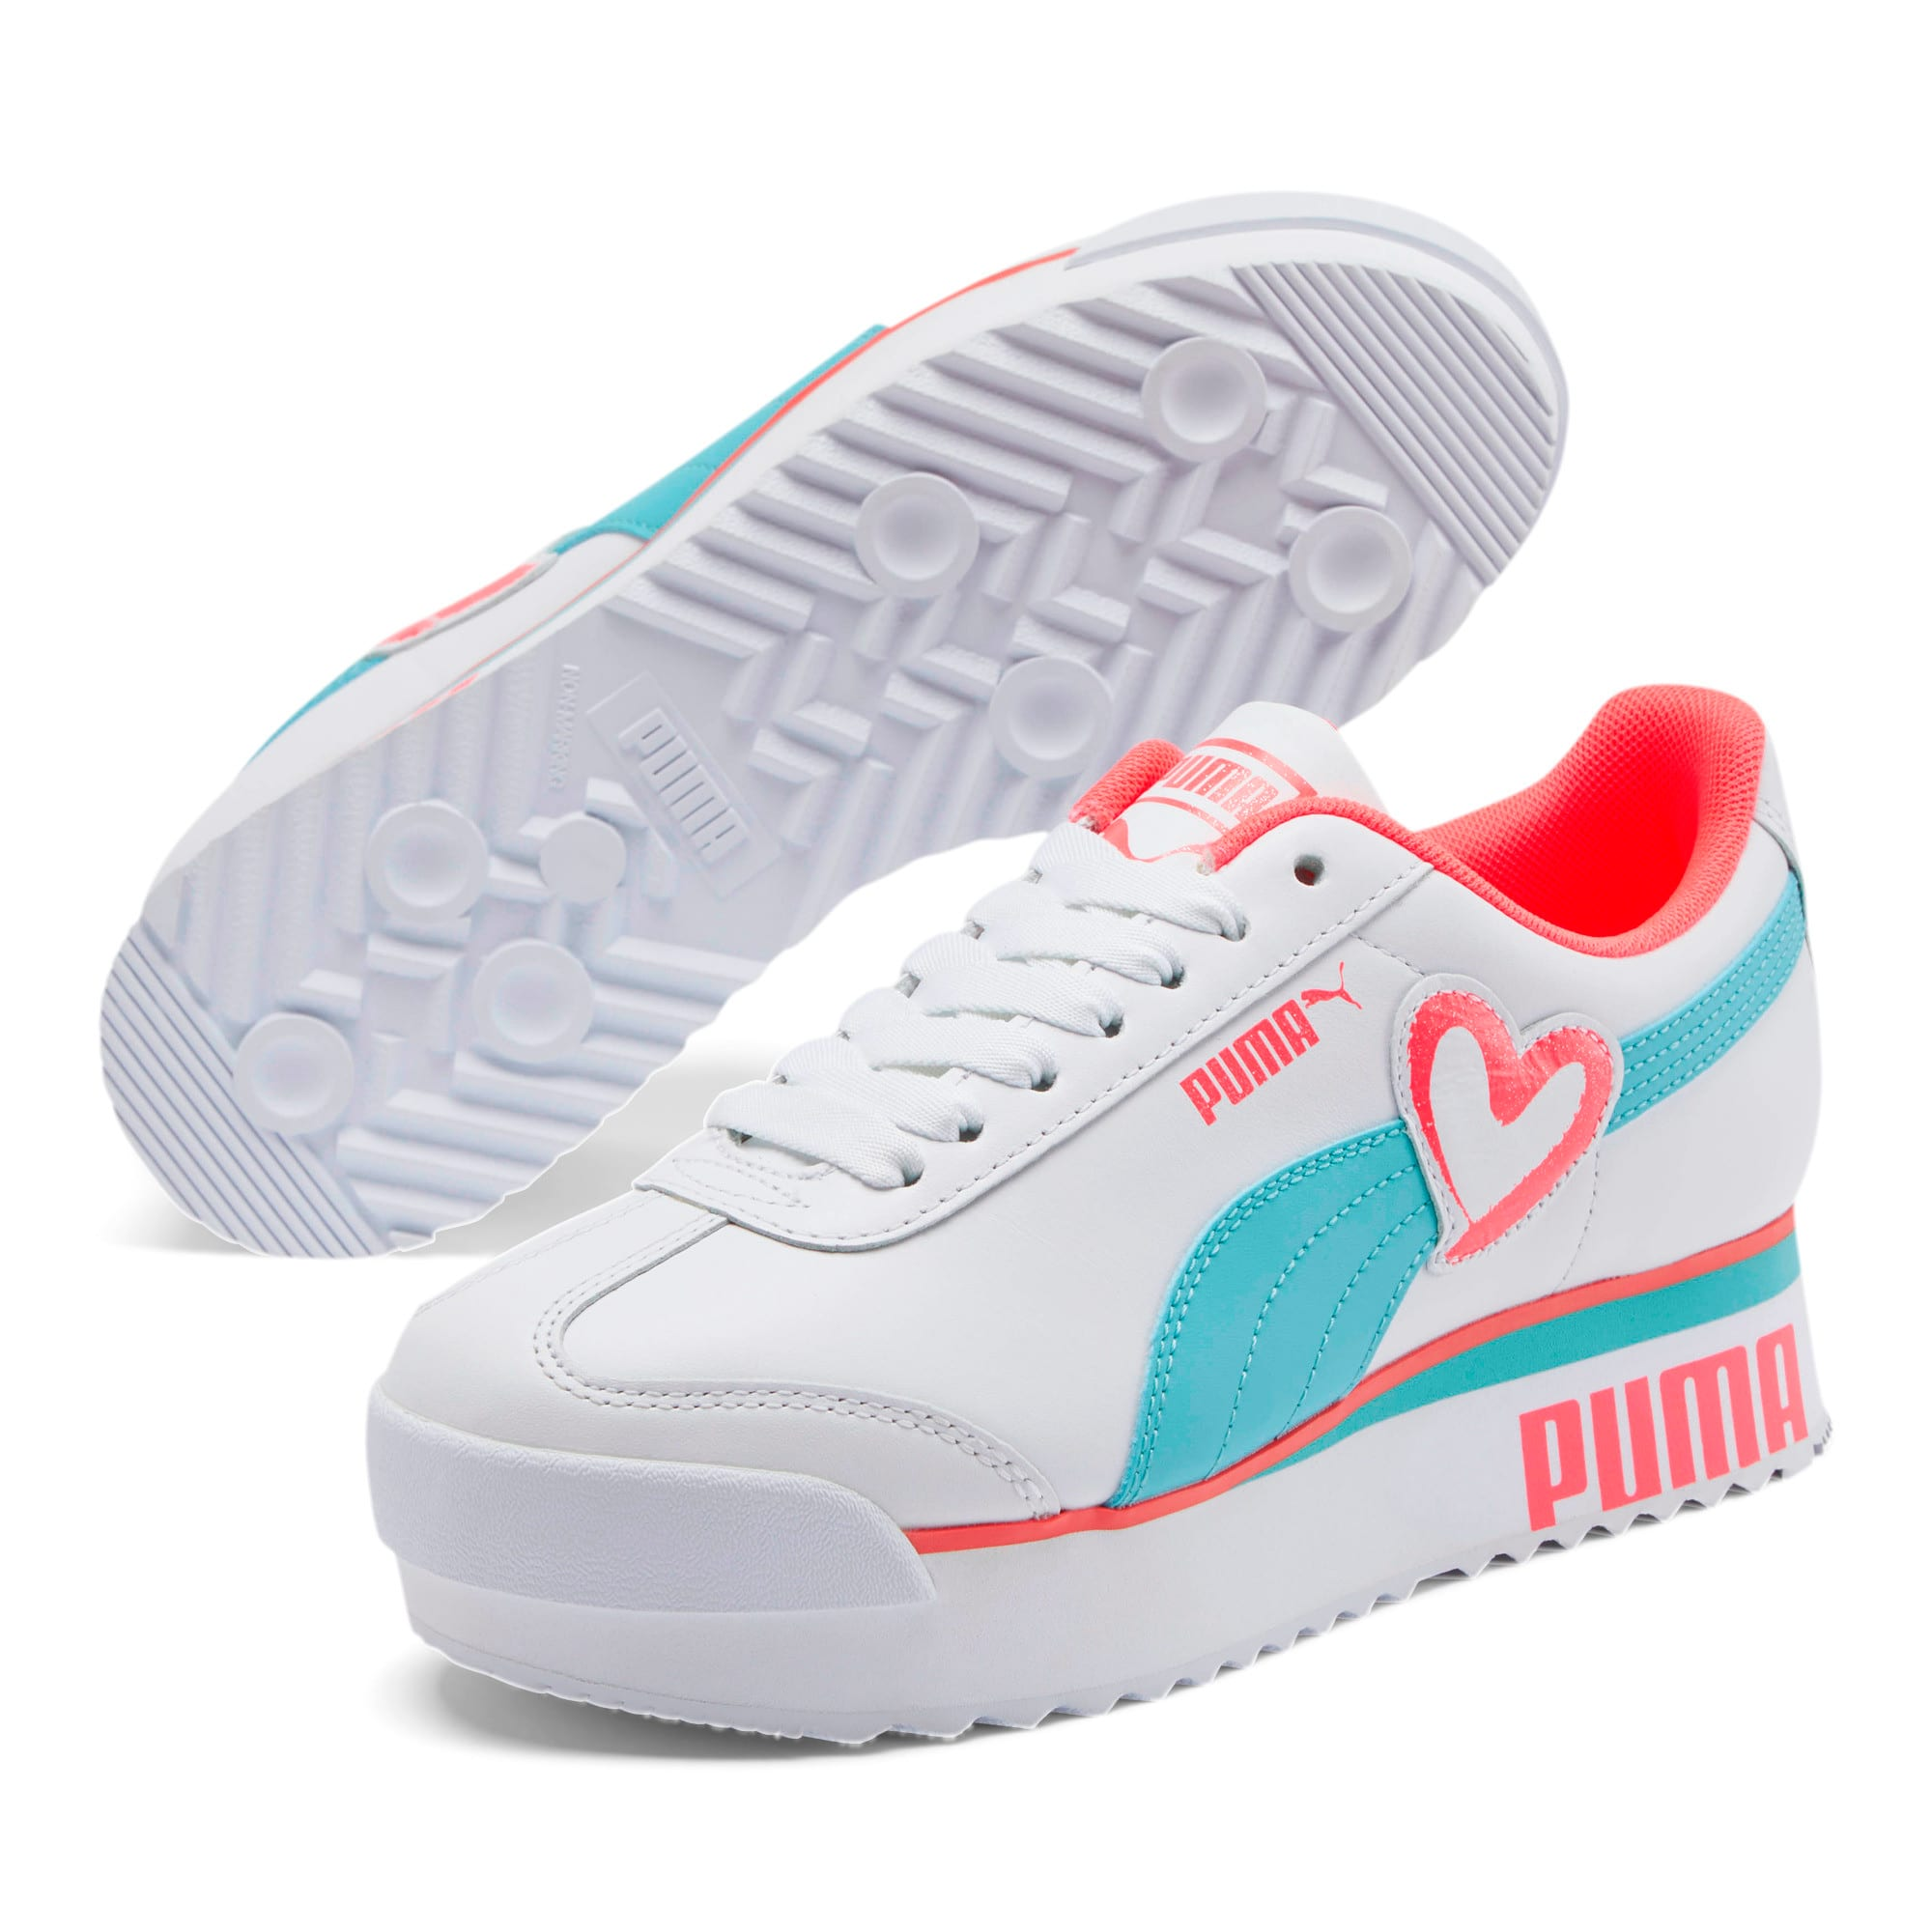 Thumbnail 2 of Roma Amor Heart Women's Sneakers, White-Milky Blue-Pink Alert, medium